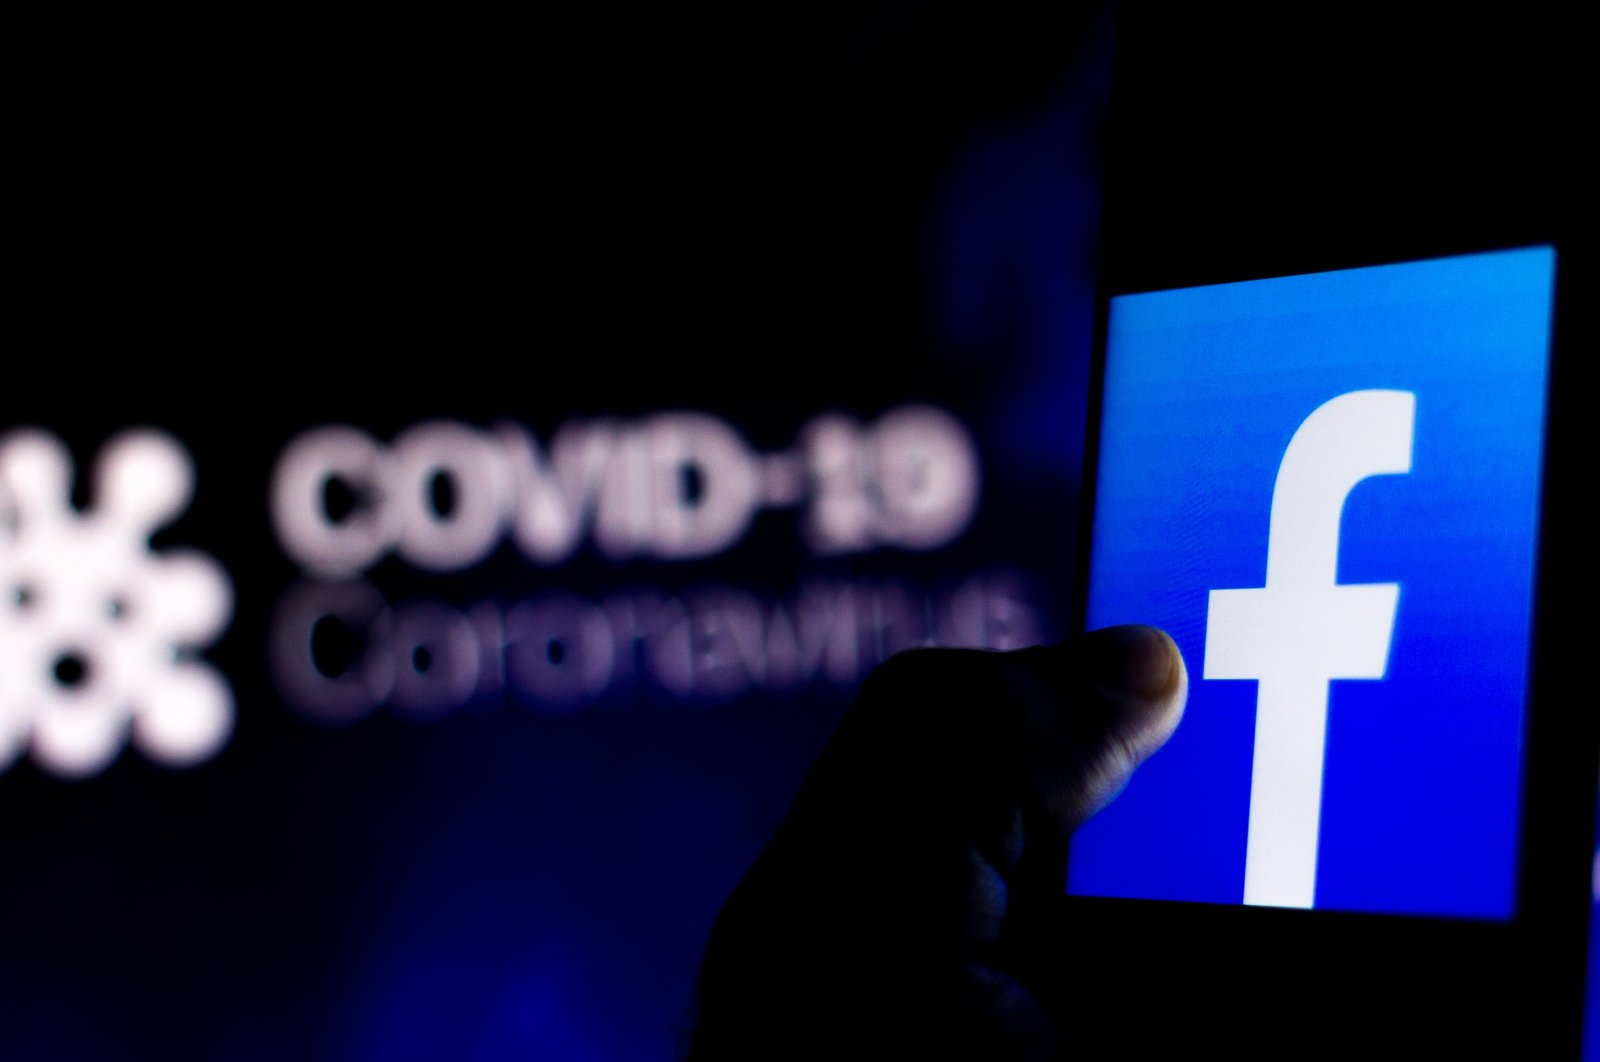 The Facebook logo is seen displayed on a smartphone with a computer model of the COVID-19 coronavirus in the background, April 5, 2020. (Photo by Shutterstock)